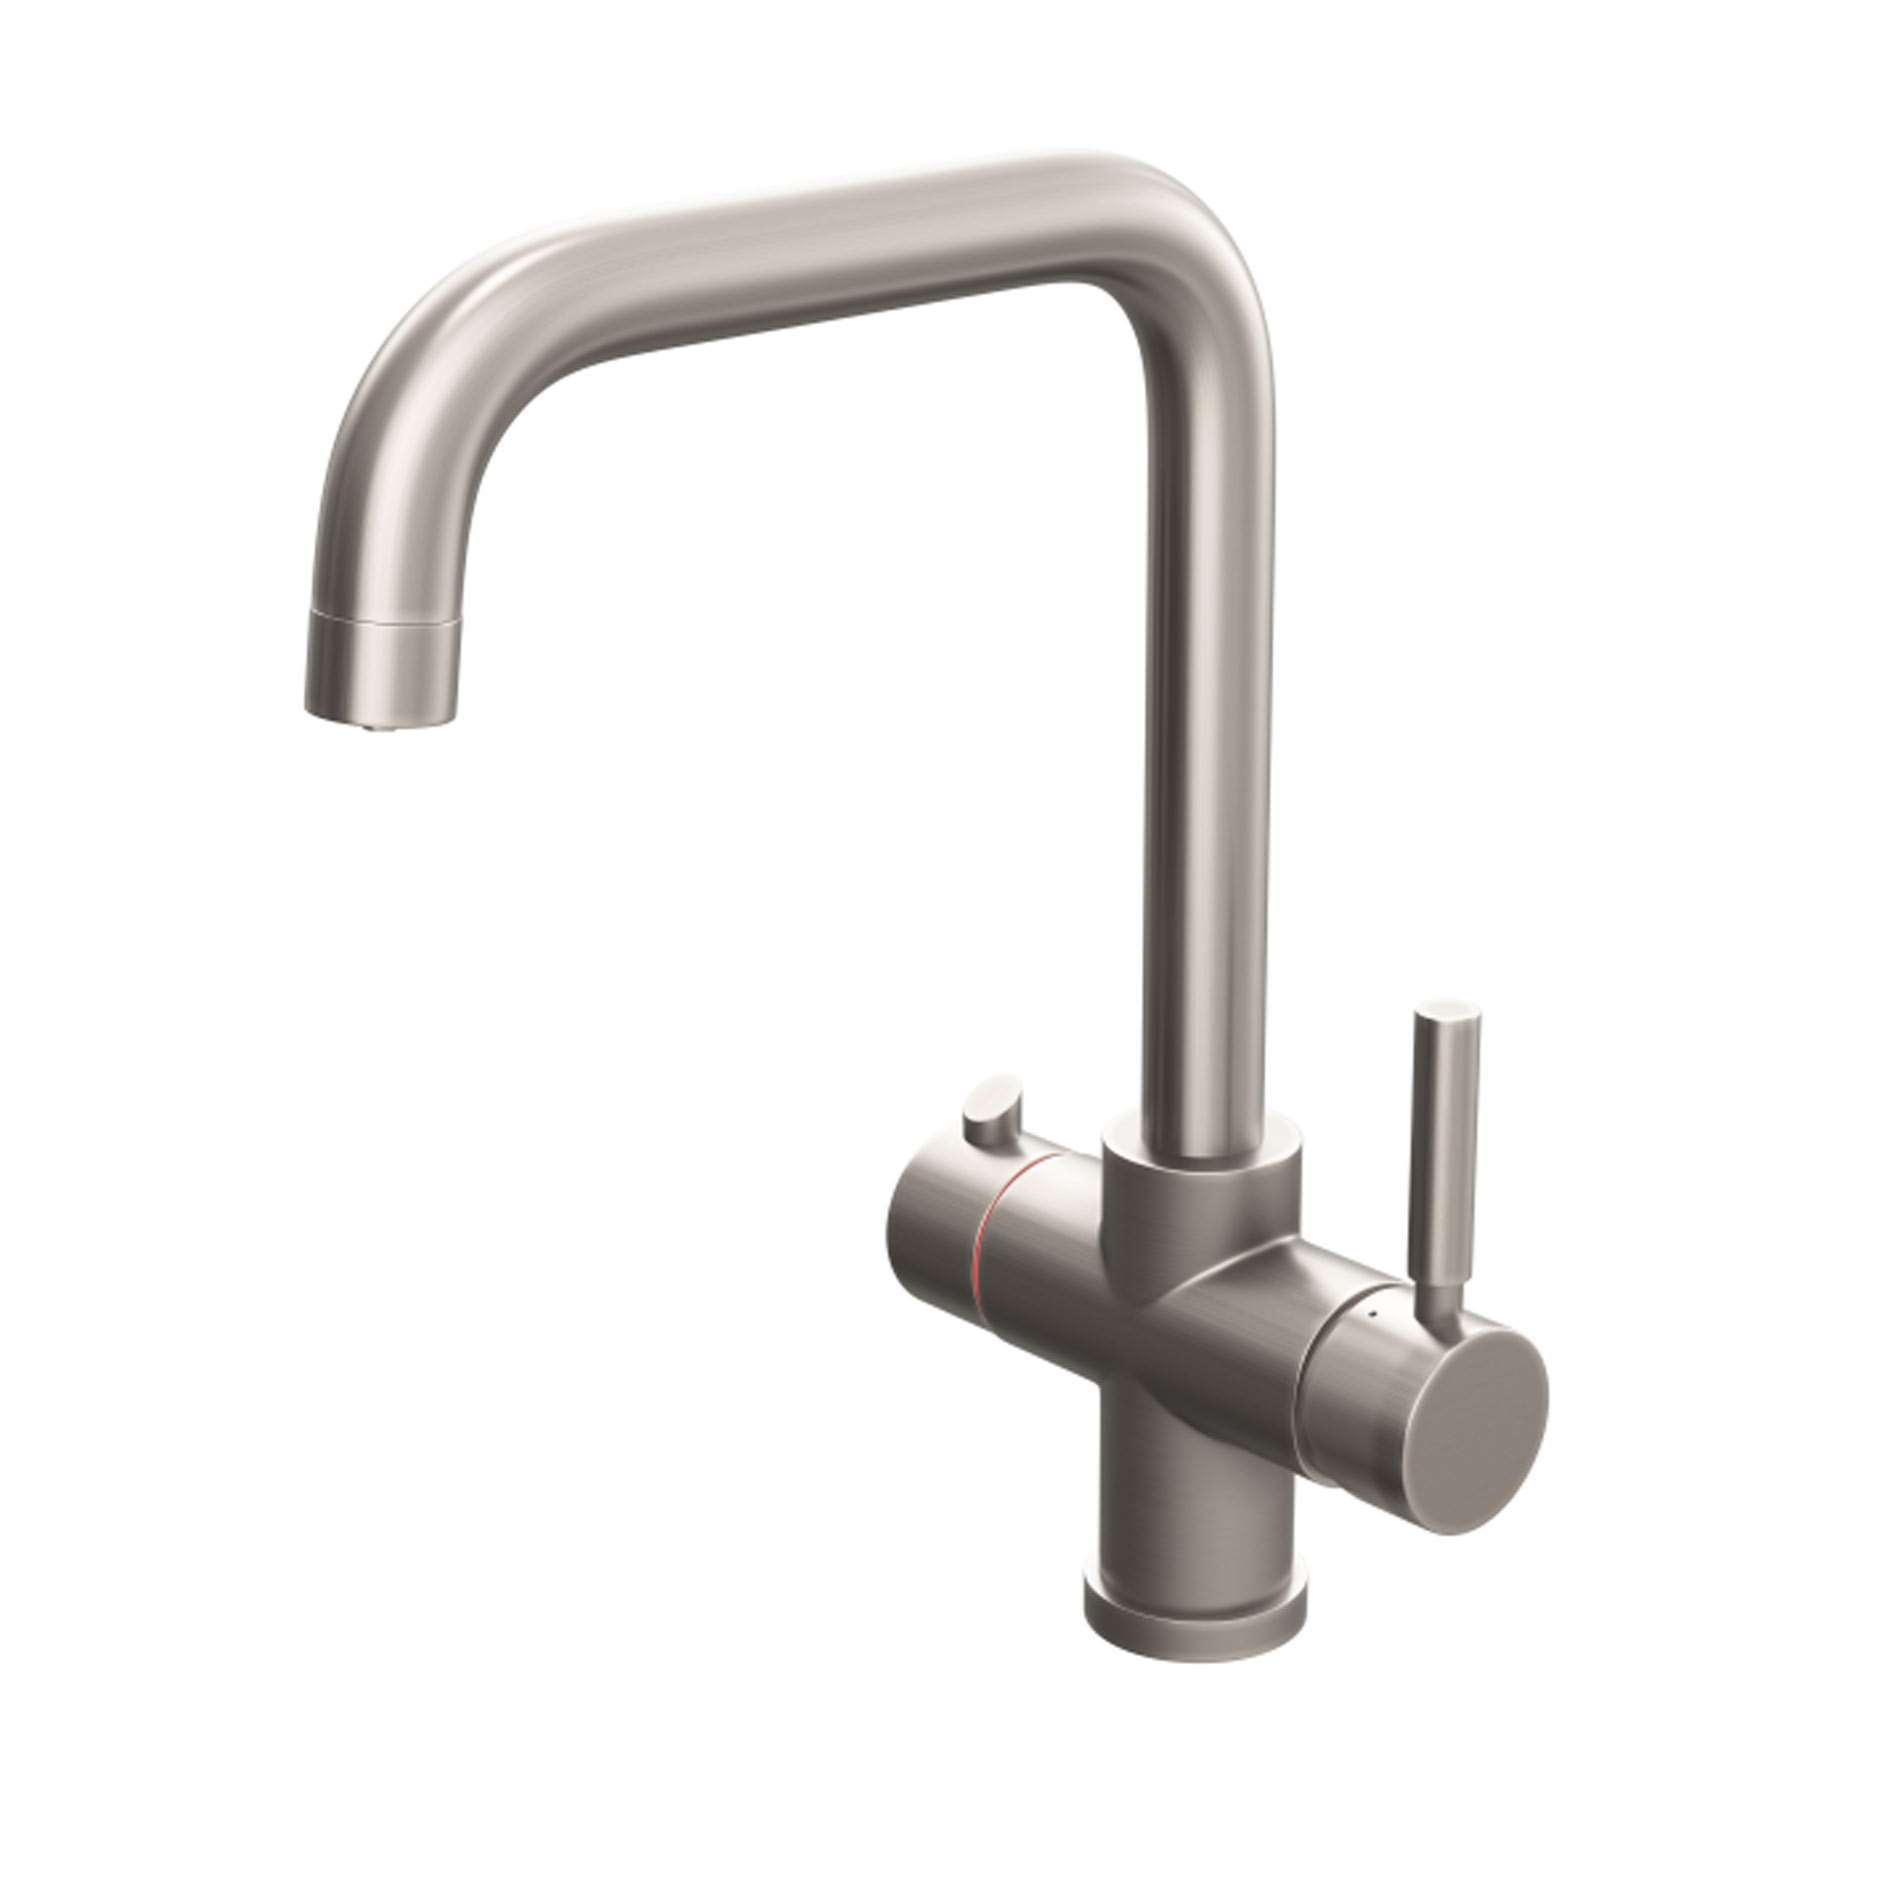 Picture of Amanzi Steaming 3 in 1 Brushed Nickel Hot Water Tap